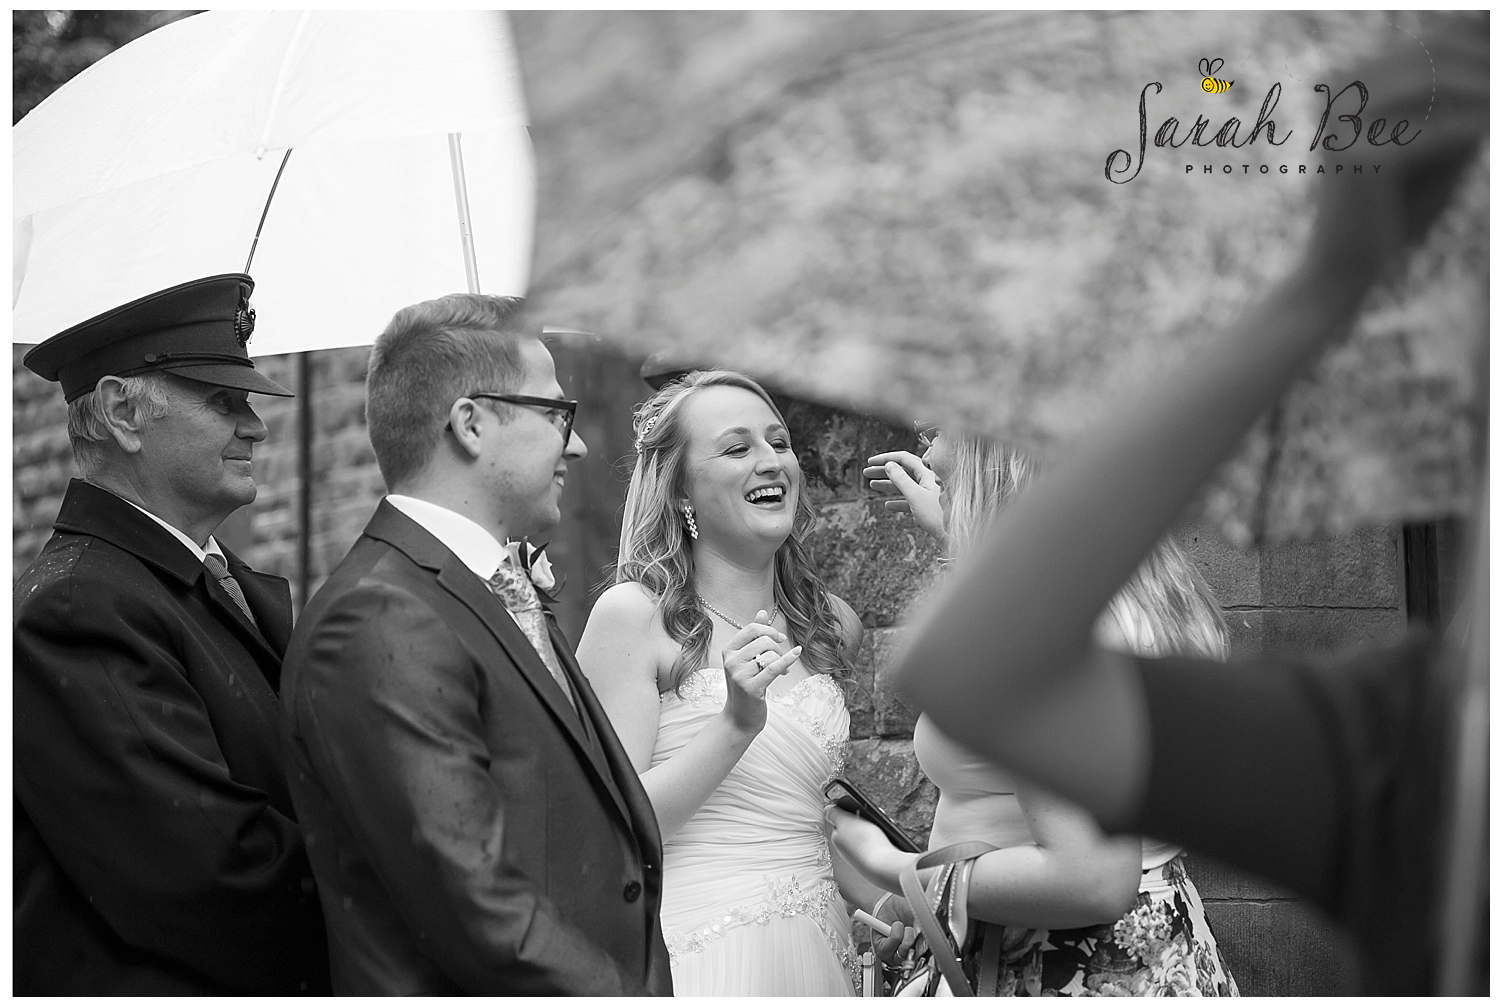 wedding photography with sarah bee photography, Peruga woodheys glossop, documentory photography wedding photographer_0204.jpg